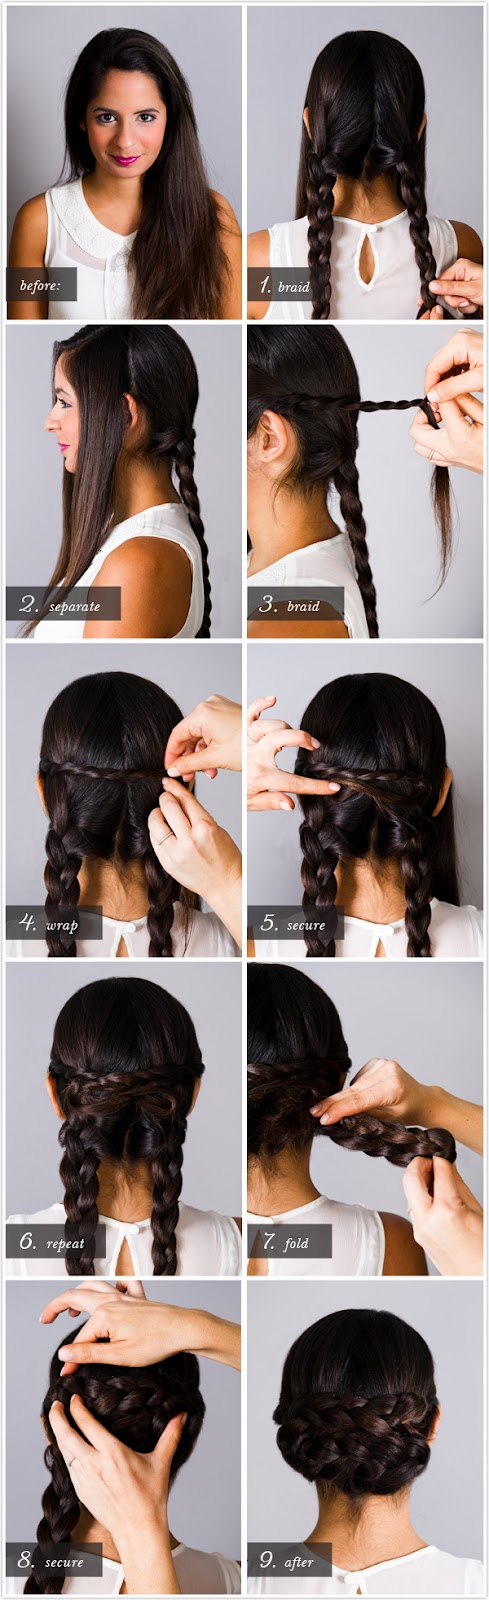 BRAID-Y-BUNCH